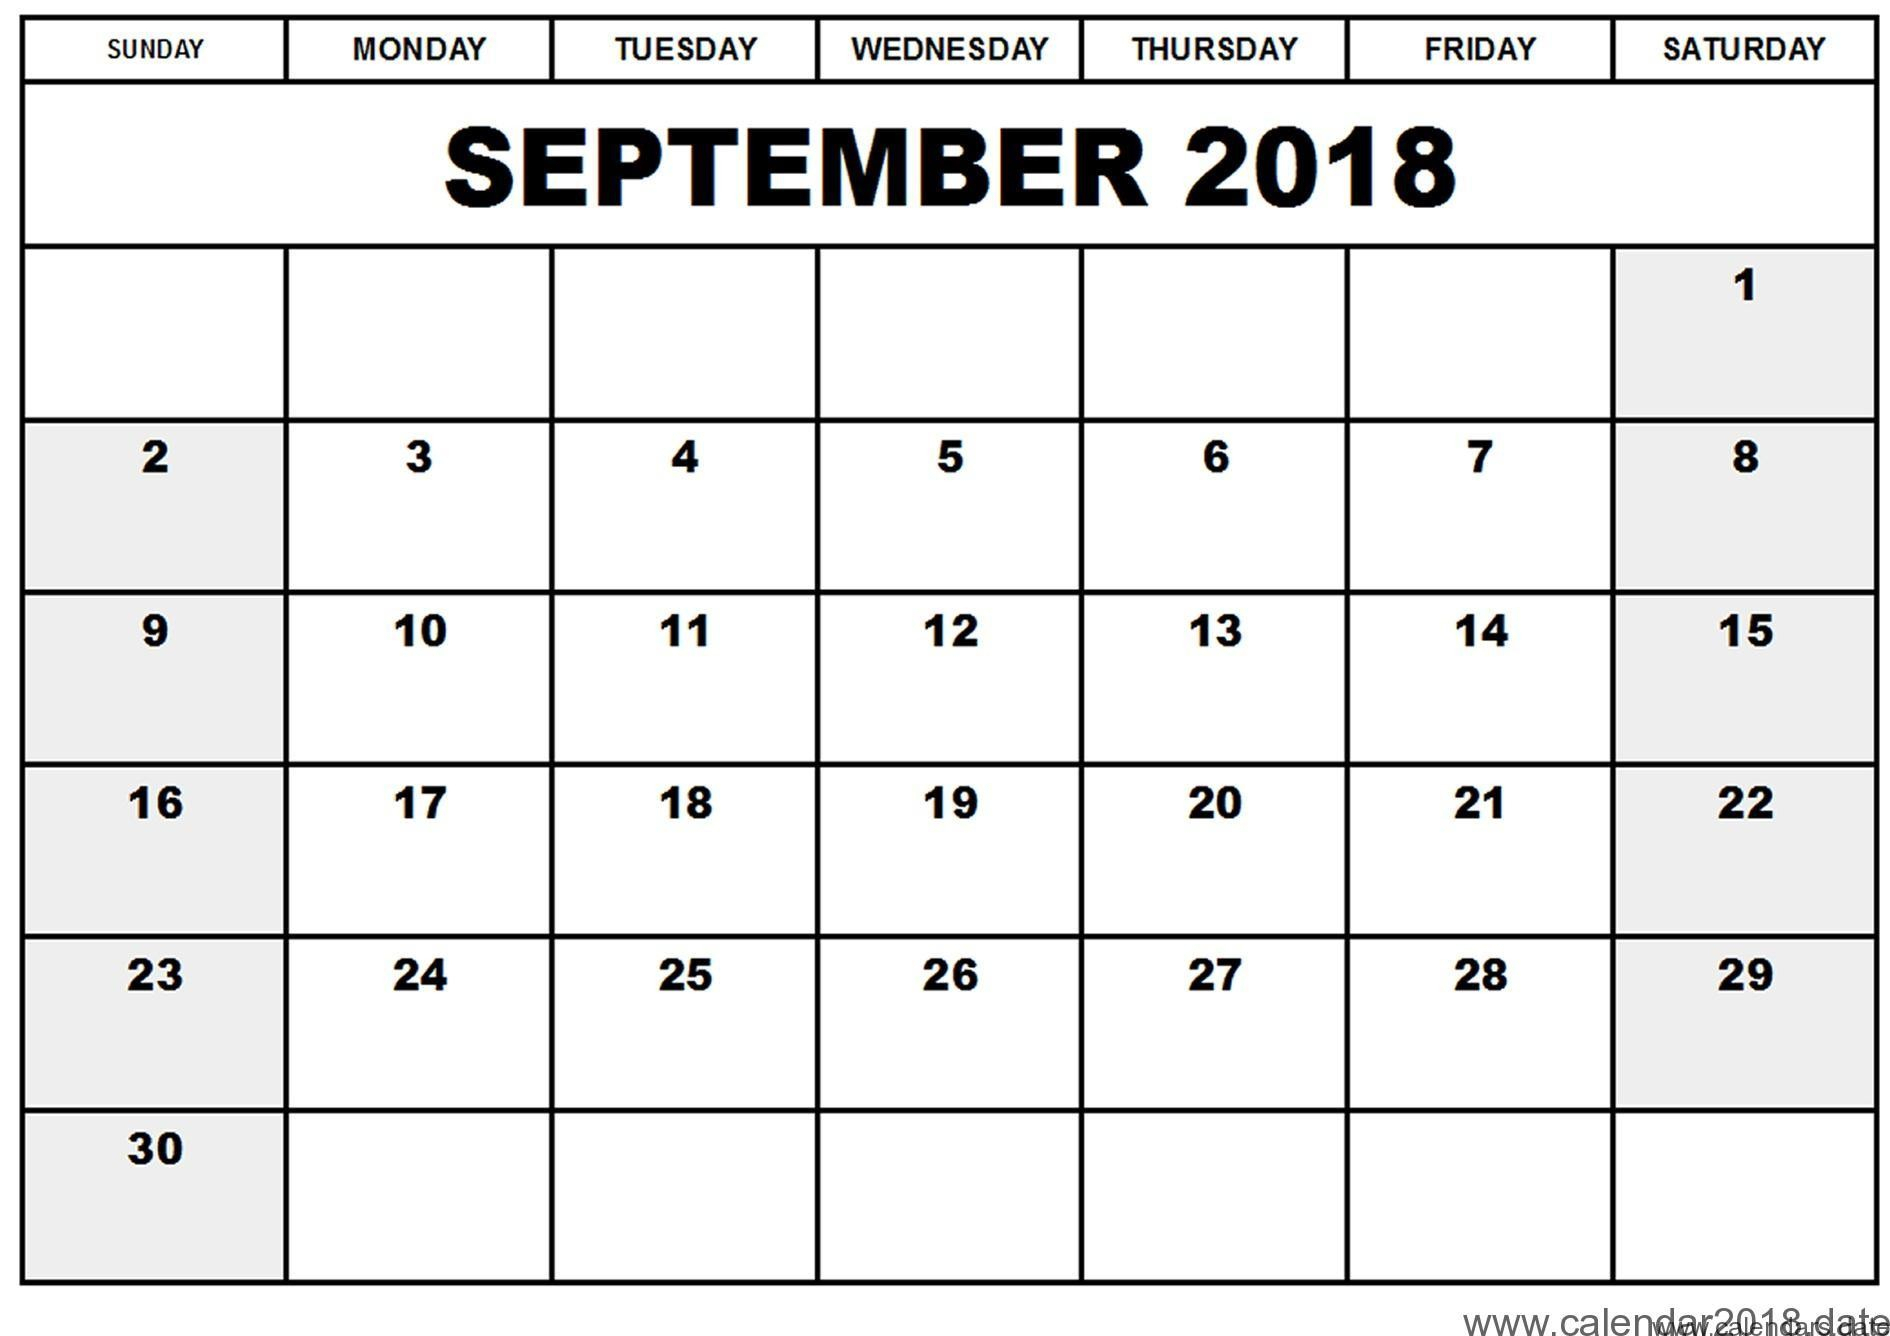 Printable Calendar Template September 2018 | Printable Calendar 2019 within Blank Calendar Print-Outs Fill In Sept